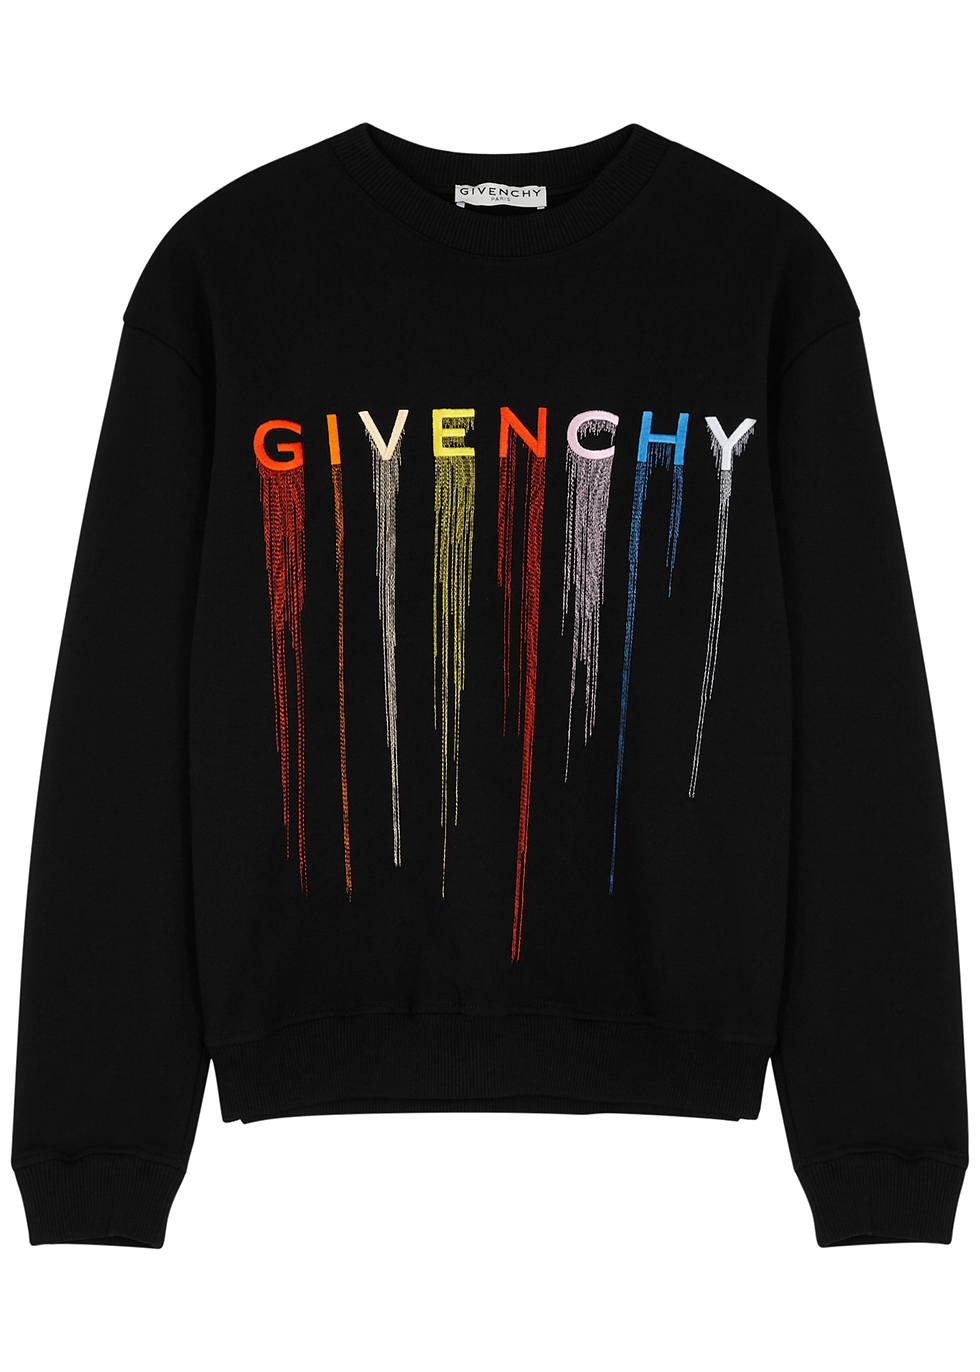 Givenchy Women's Hoodies & Sweatshirts